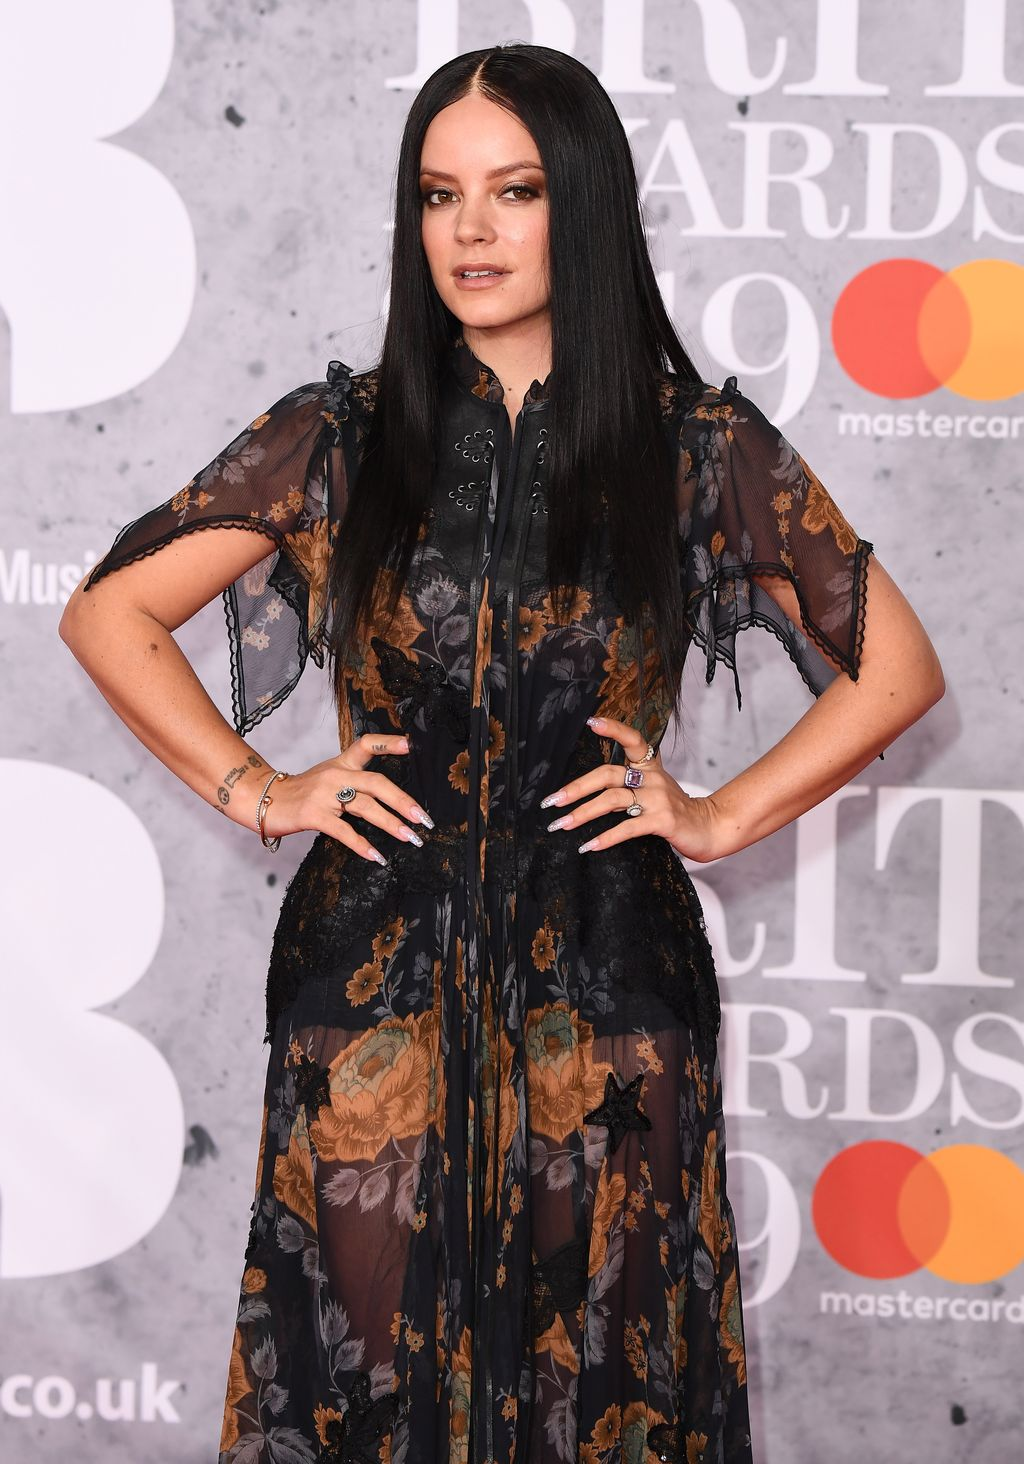 LONDON, ENGLAND - FEBRUARY 20: (EDITORIAL USE ONLY)   Lily Allen attends The BRIT Awards 2019 held at The O2 Arena on February 20, 2019 in London, England. (Photo by Jeff Spicer/Getty Images)